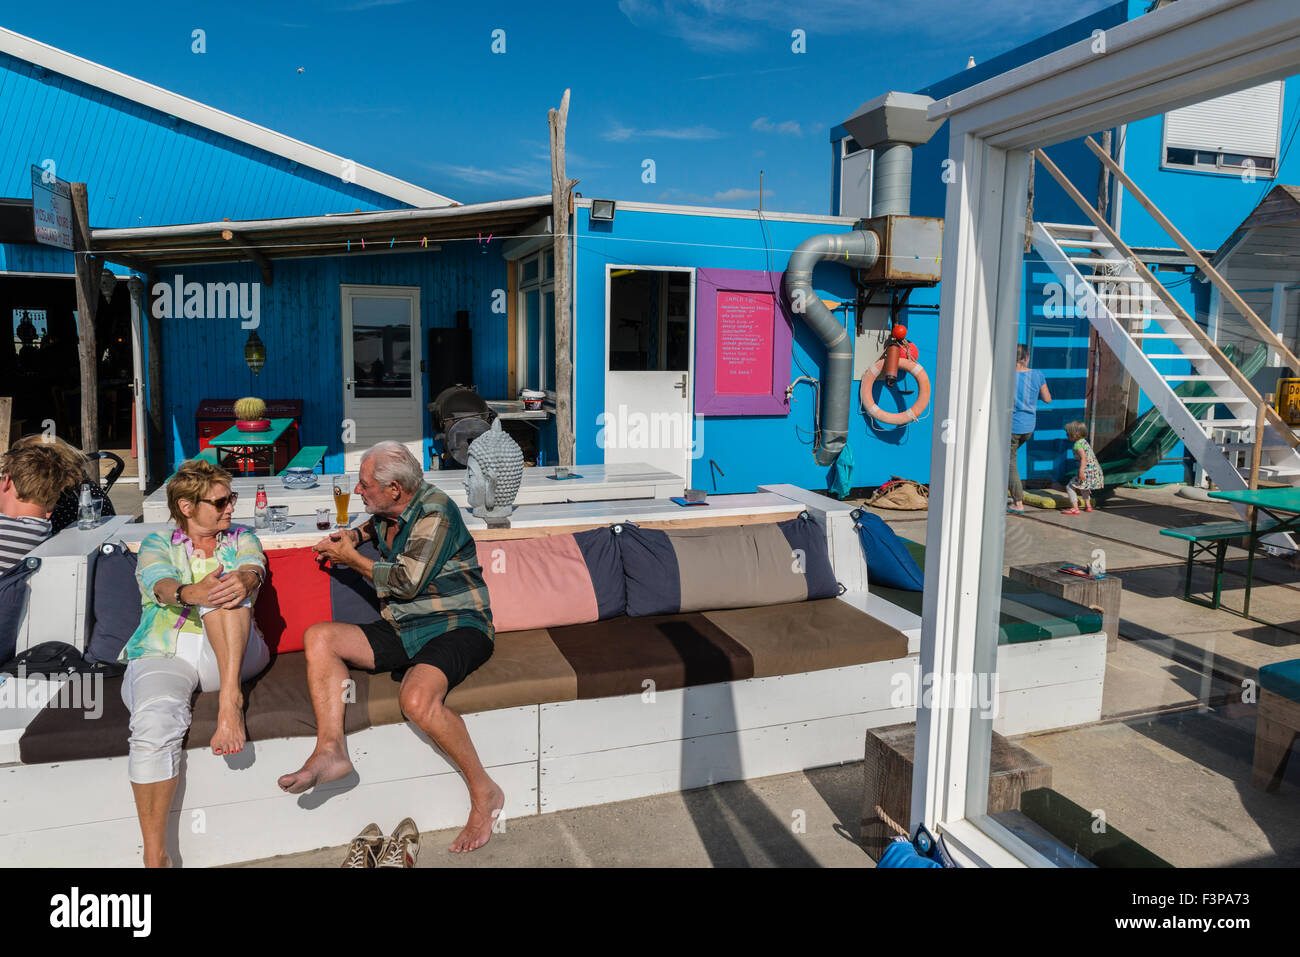 2 July, 2014  The Zandzee Bar at paal 11 at the Noordzee Beach is a colorful place with good food and drinks. The beach is very  Stock Photo